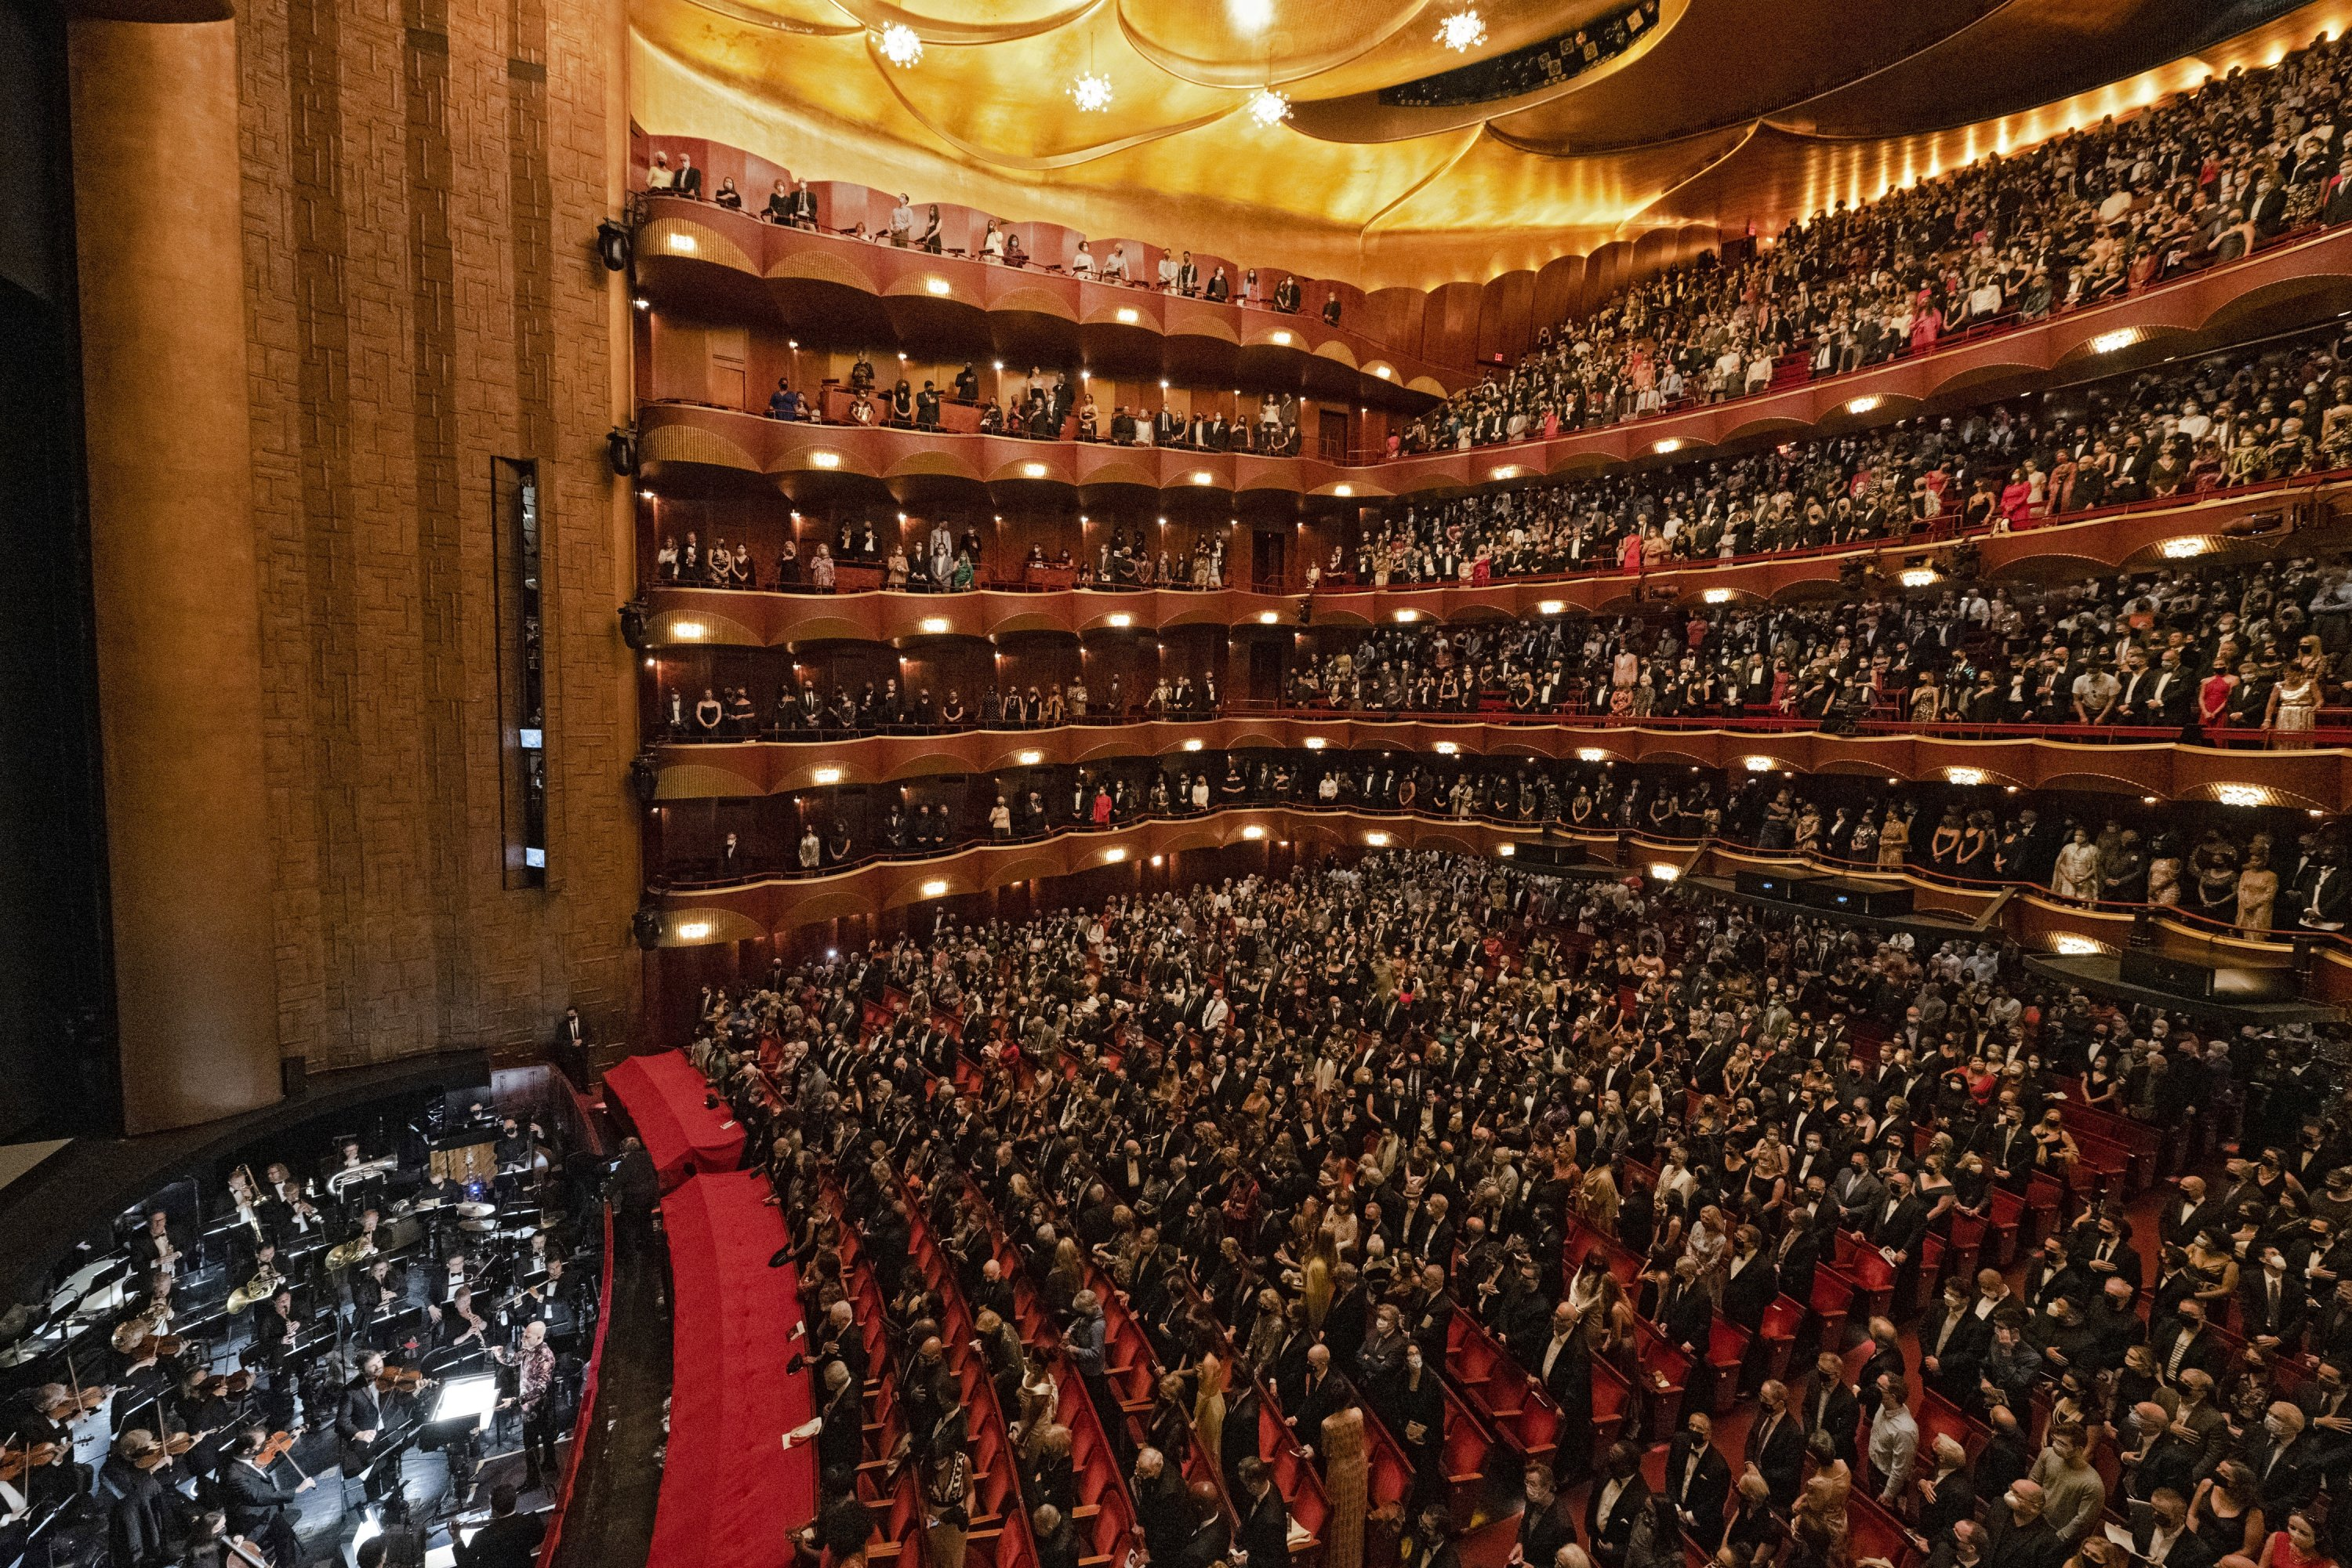 In this photo provided by the Metropolitan Opera, the audience stands for the national anthem before the performance of Terence Blanchard's 'Fire Shut Up in My Bones,' which opened the Metropolitan Opera's 2021-2022 season on Monday, Sept. 27, 2021, in New York. (Jonathan Tichler/Metropolitan Opera via AP)